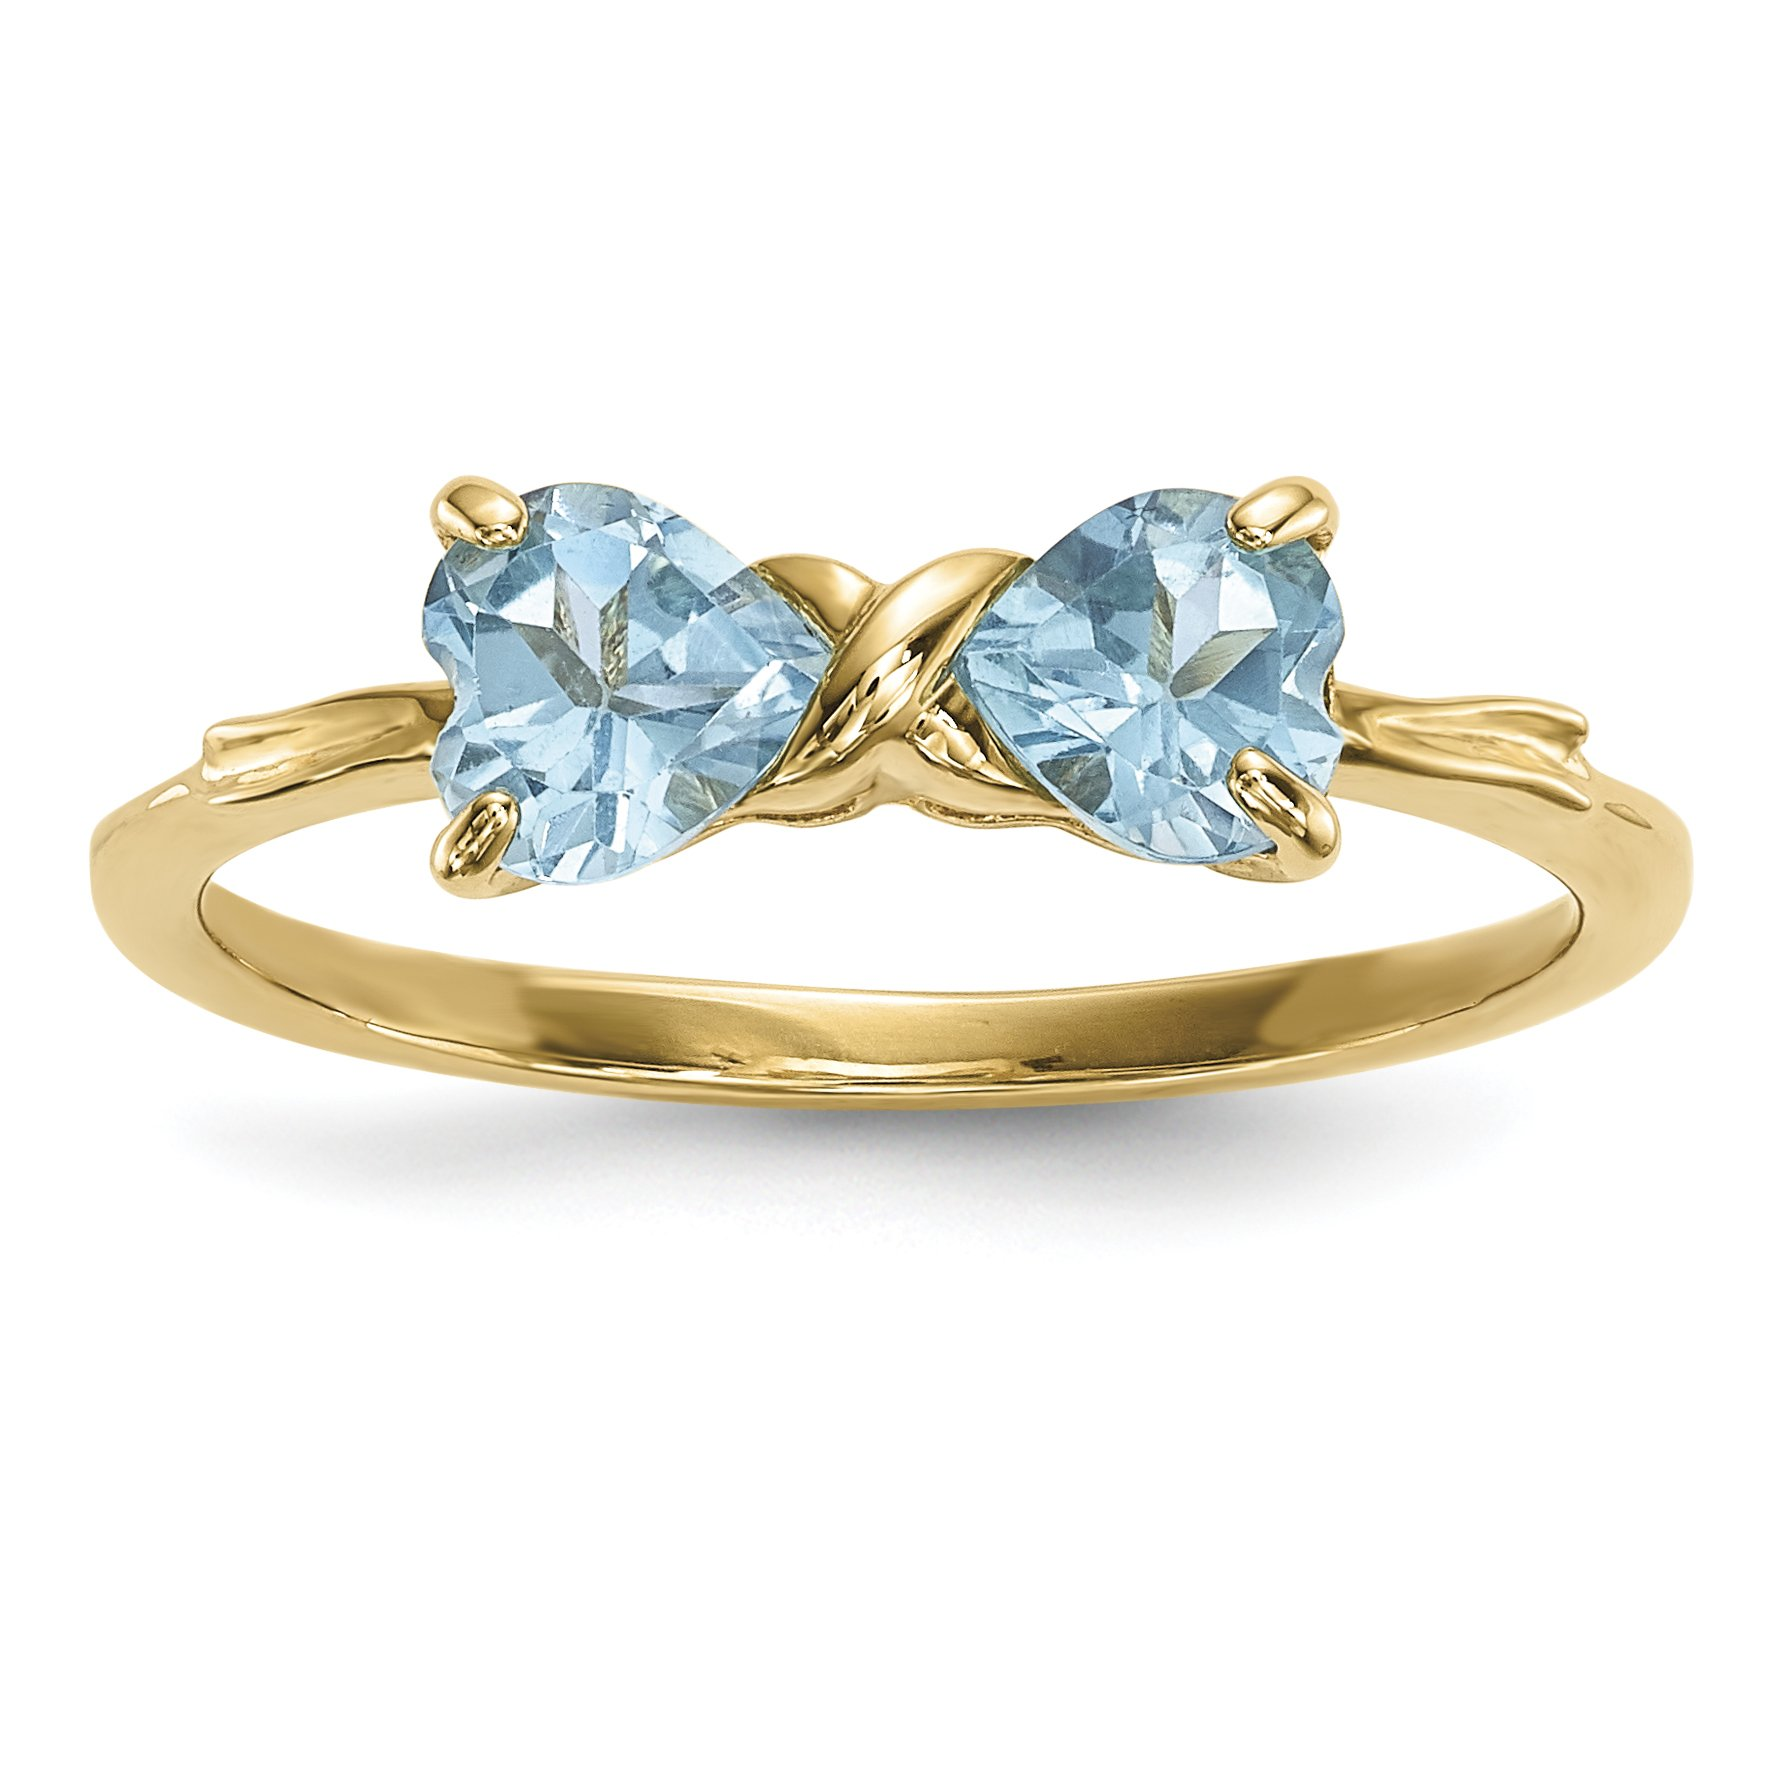 ICE CARATS 14k Yellow Gold Swiss Blue Topaz Bow Band Ring Size 7.00 Birthstone December Set Style Fine Jewelry Gift Set For Women Heart